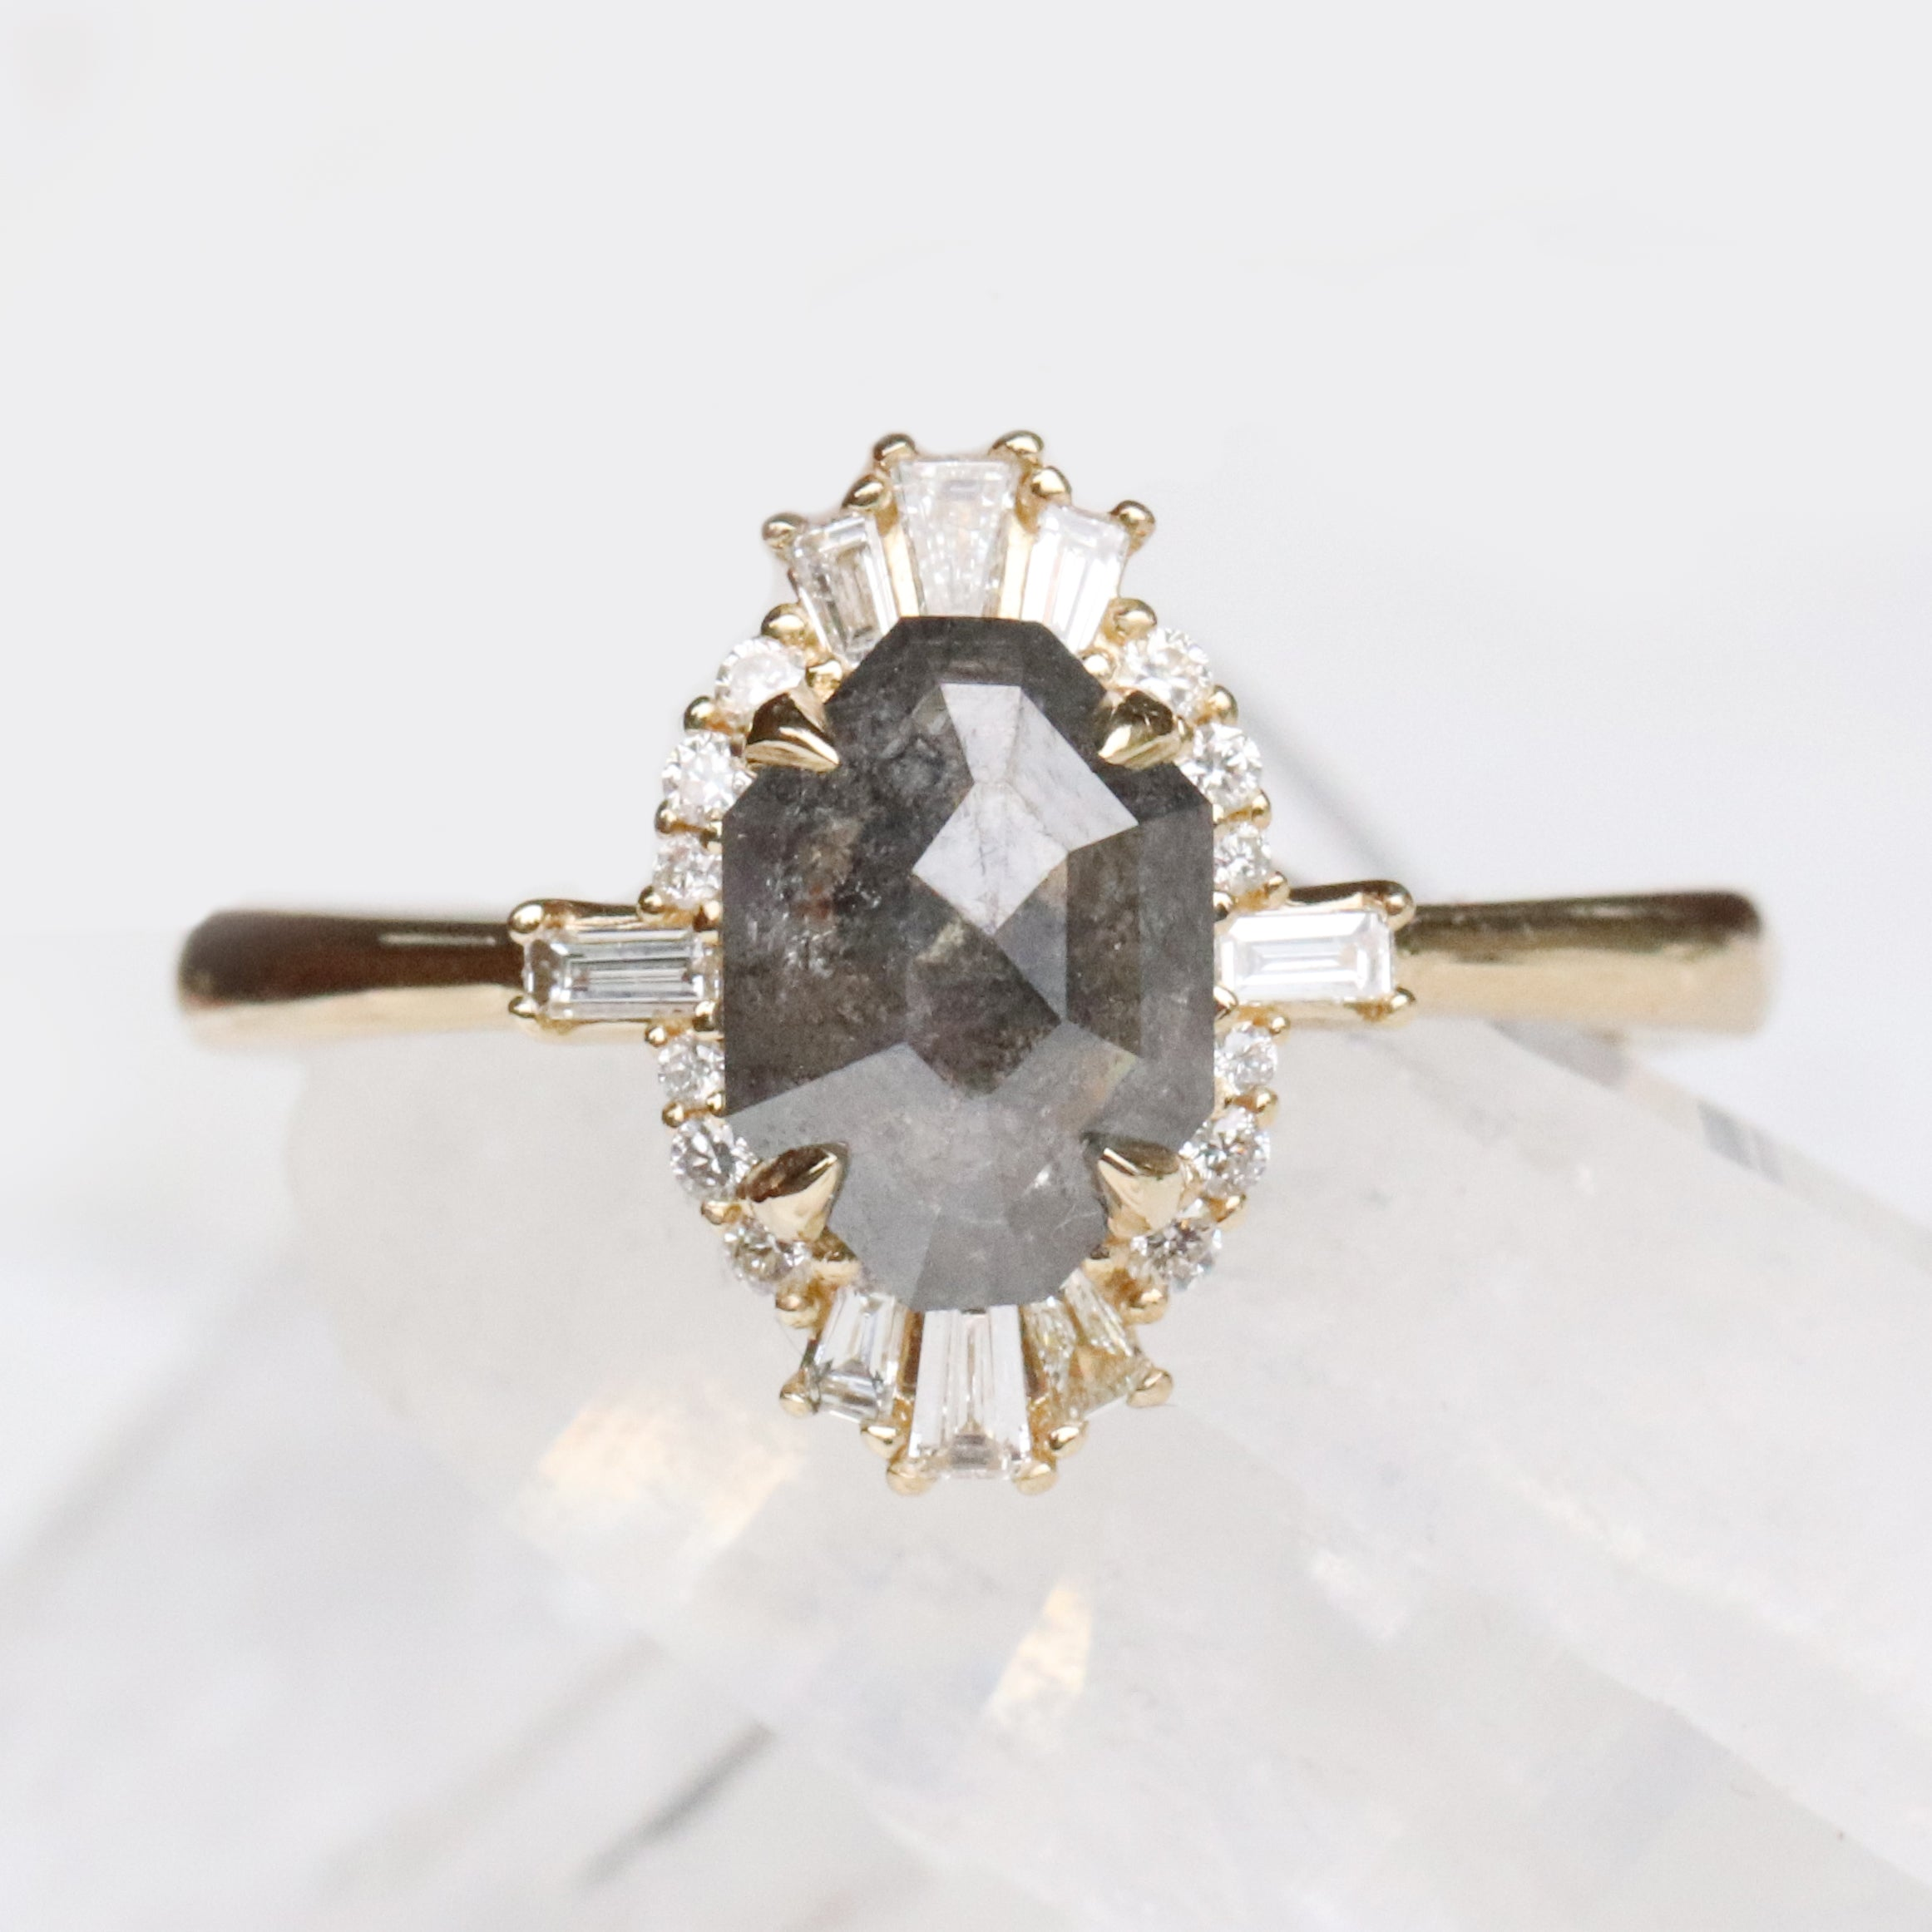 Ophelia Ring with 1.35 carat Celestial Diamond in 14k Yellow Gold - Ready to Size and Ship - Midwinter Co. Alternative Bridal Rings and Modern Fine Jewelry